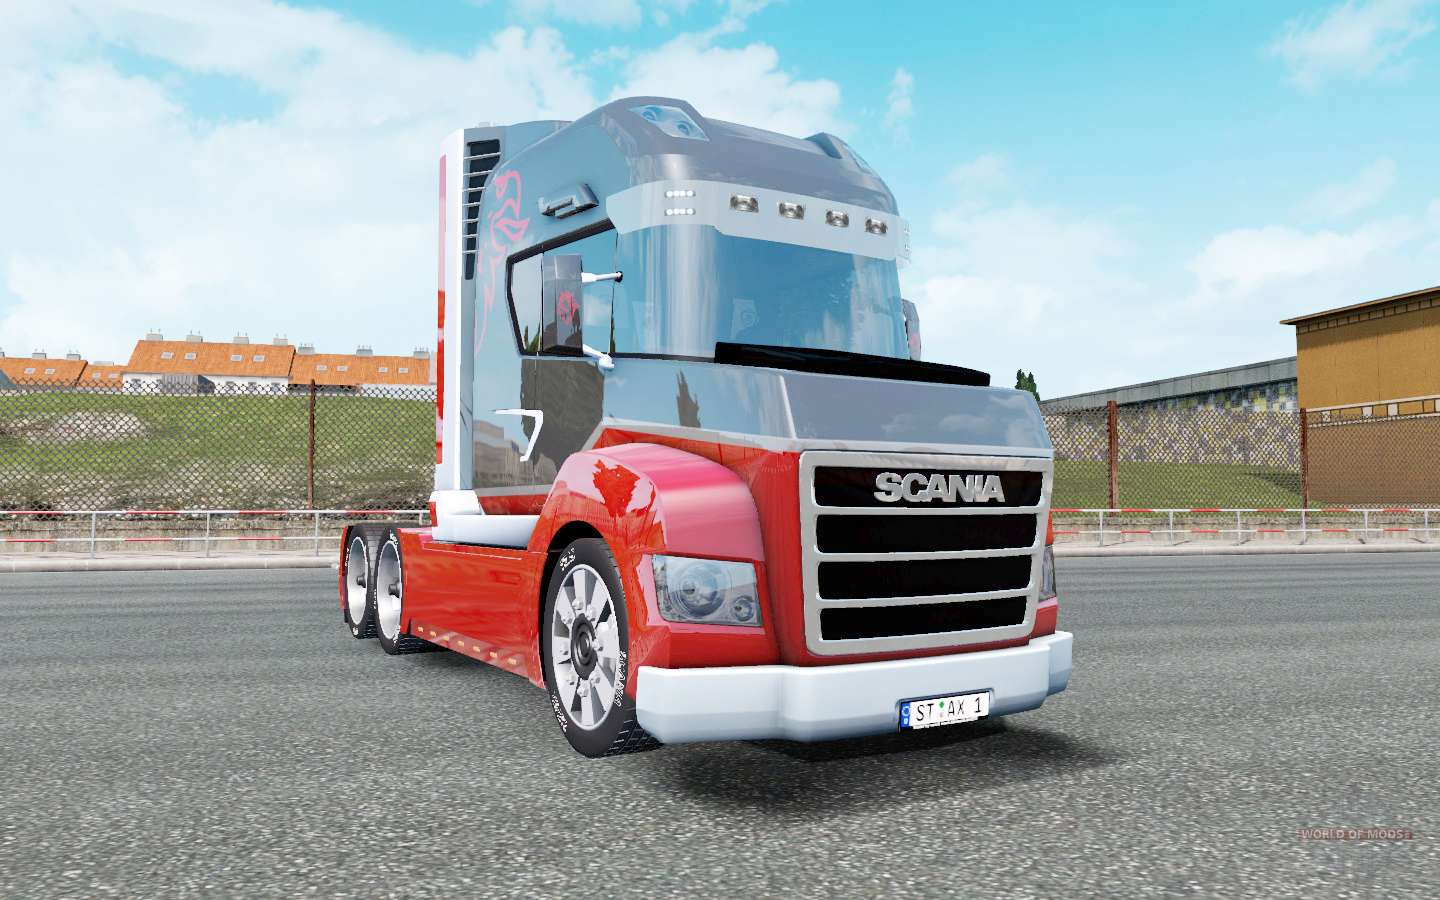 SCANIA STAX - ETS 2.